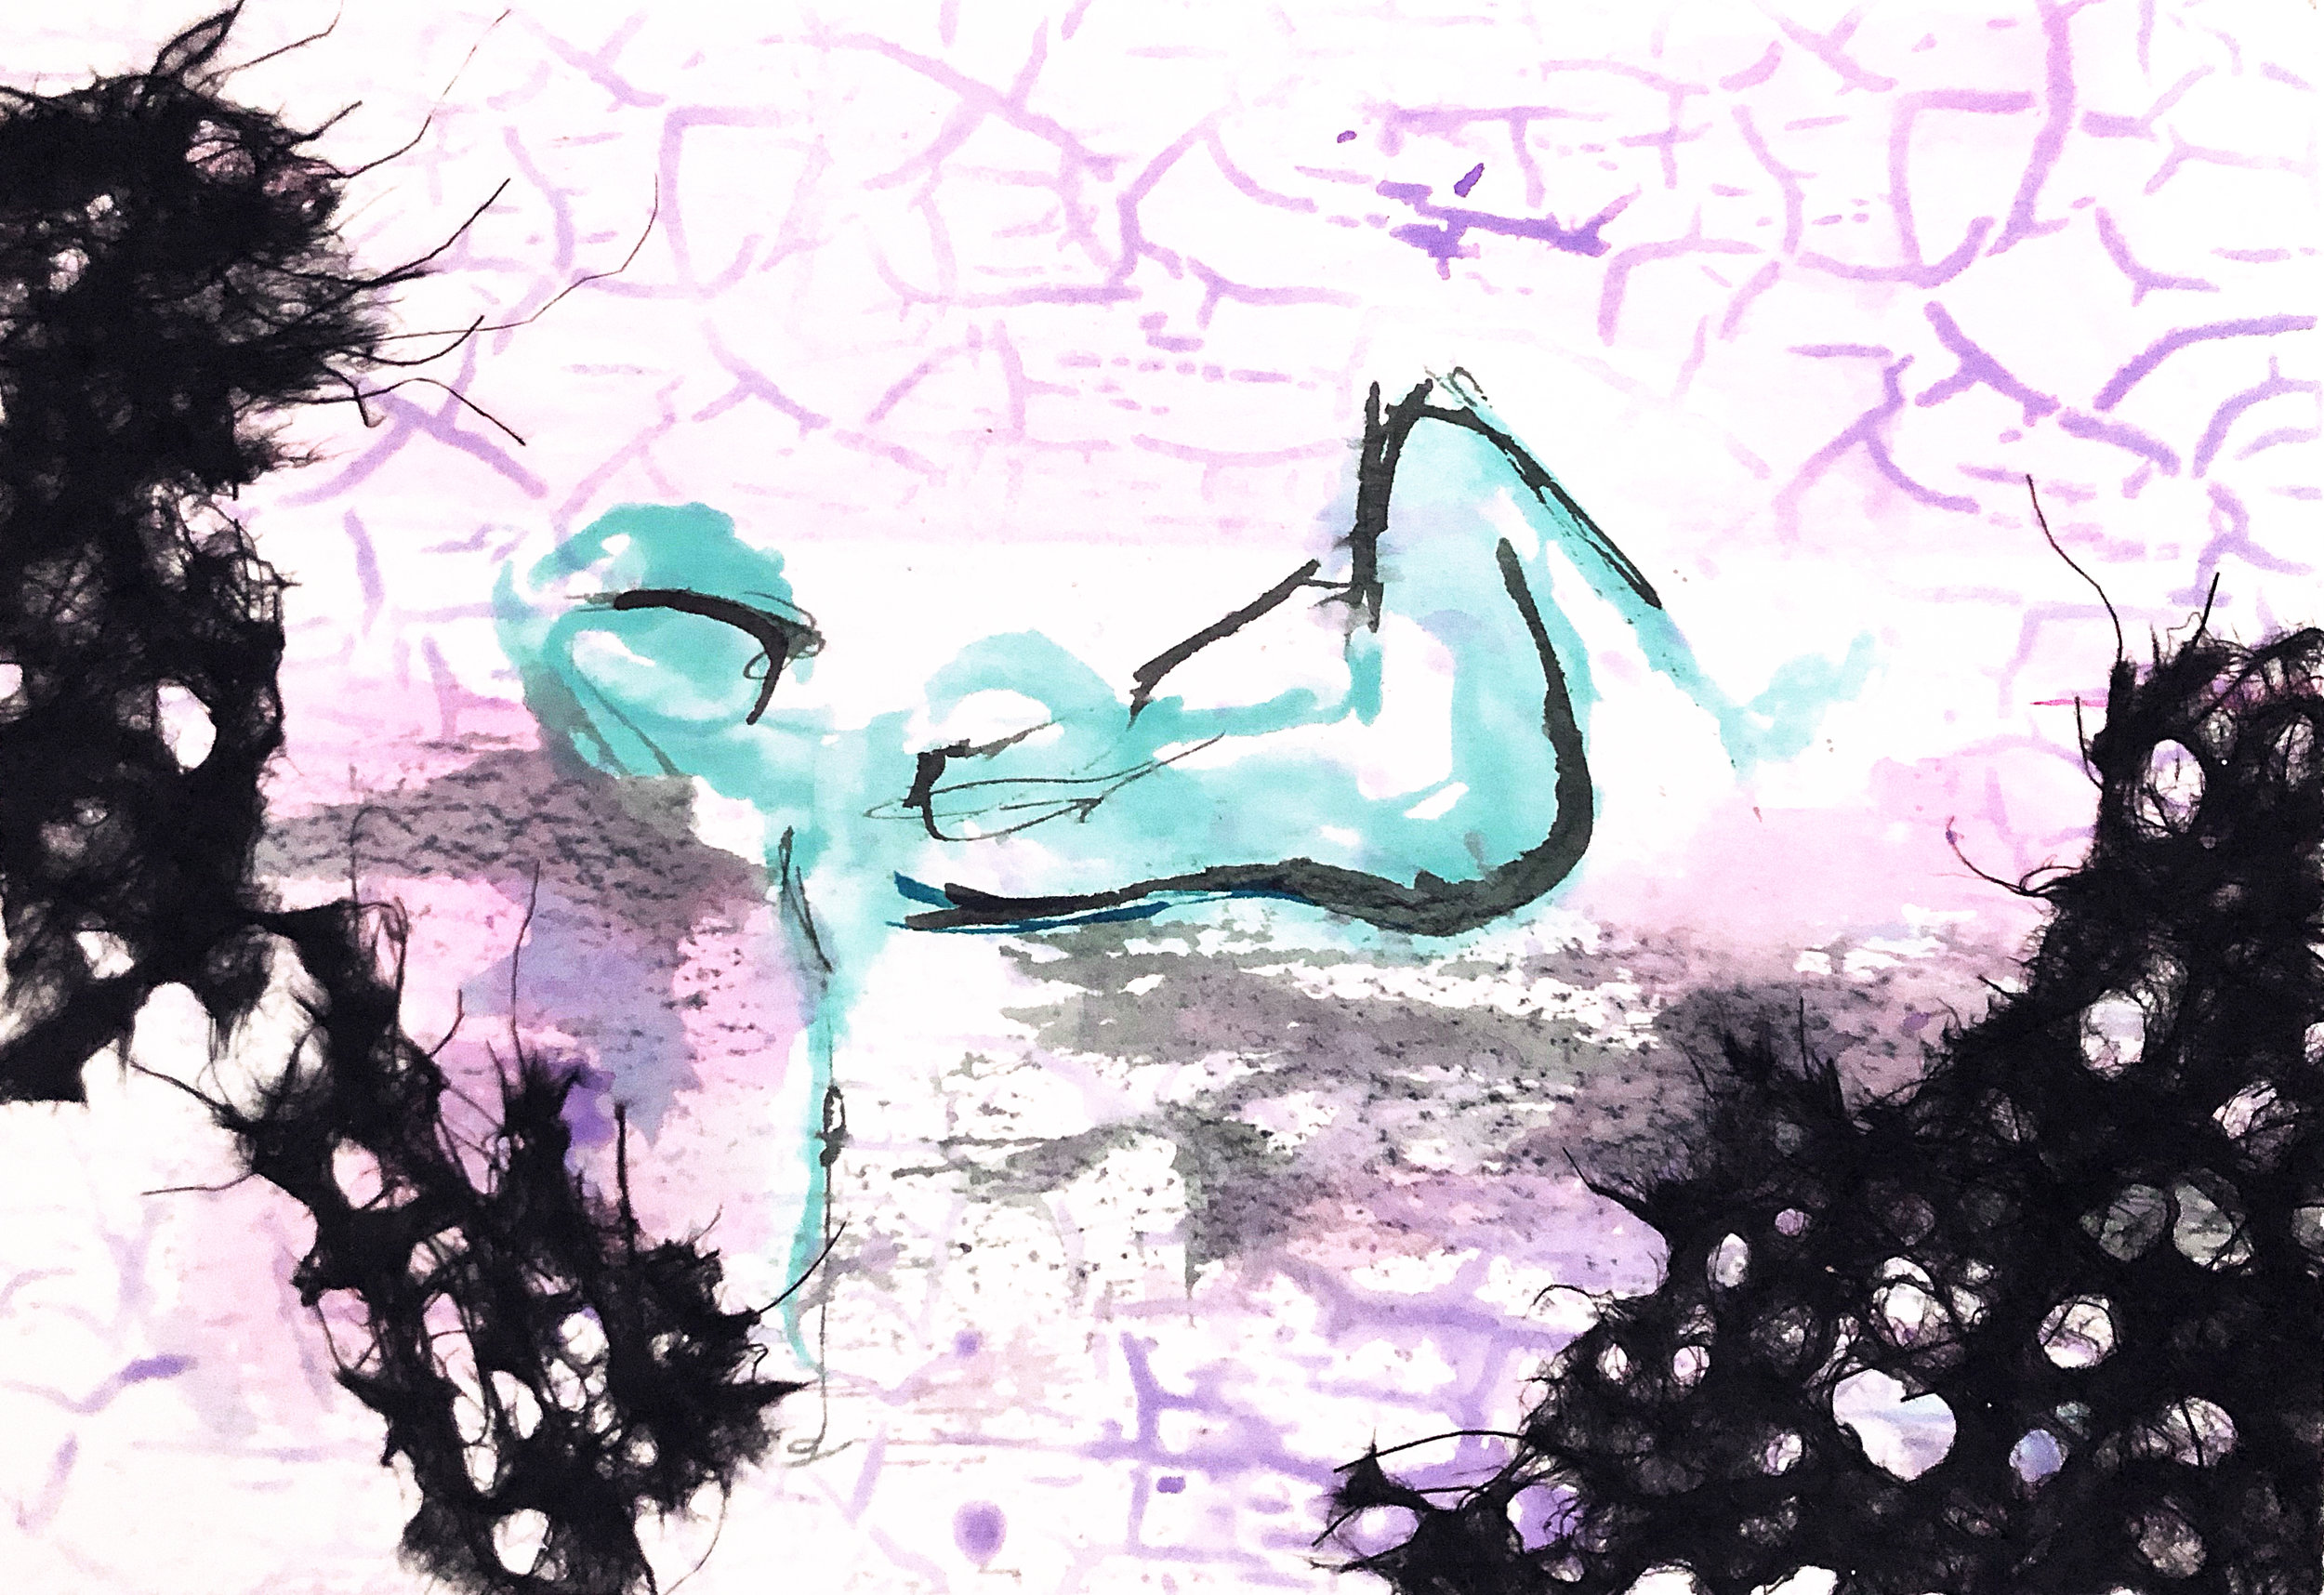 Watercolor on paper, painted with palette knives, yoga pose supine twist.